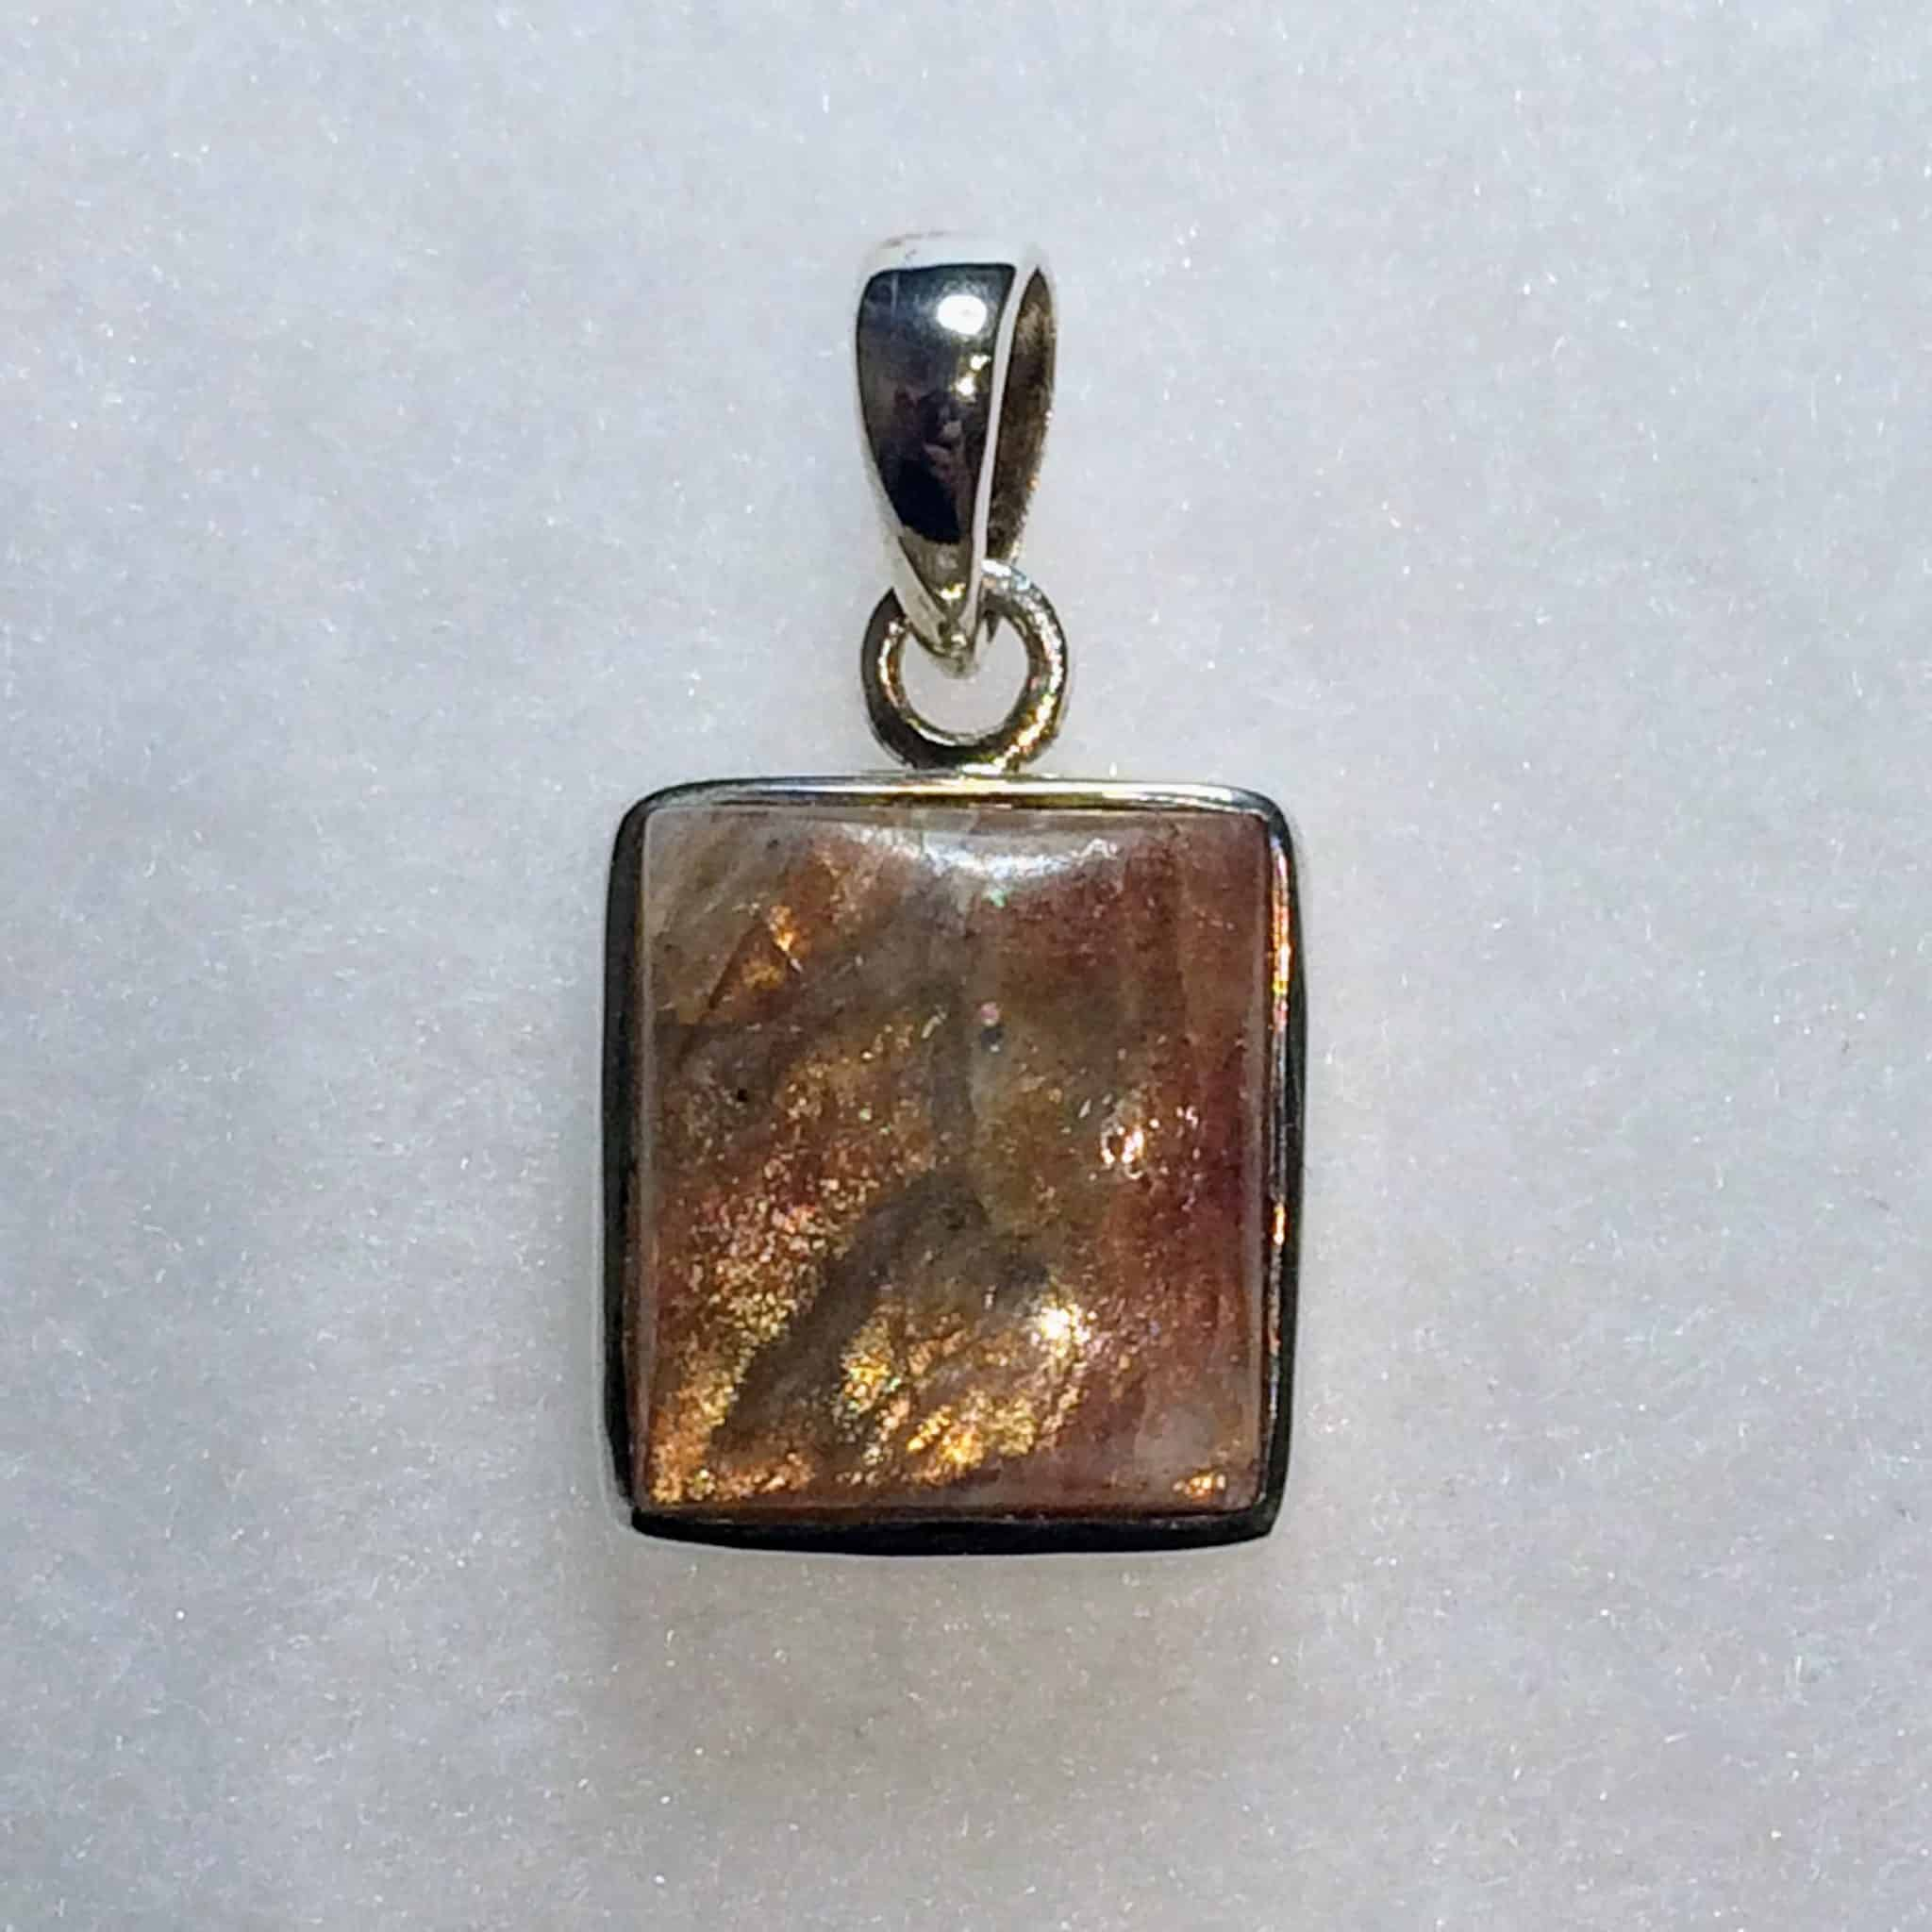 chinese money il orgone charm fullxfull abundance orgonite coin sunstone luck manifestation listing talisman pendant good